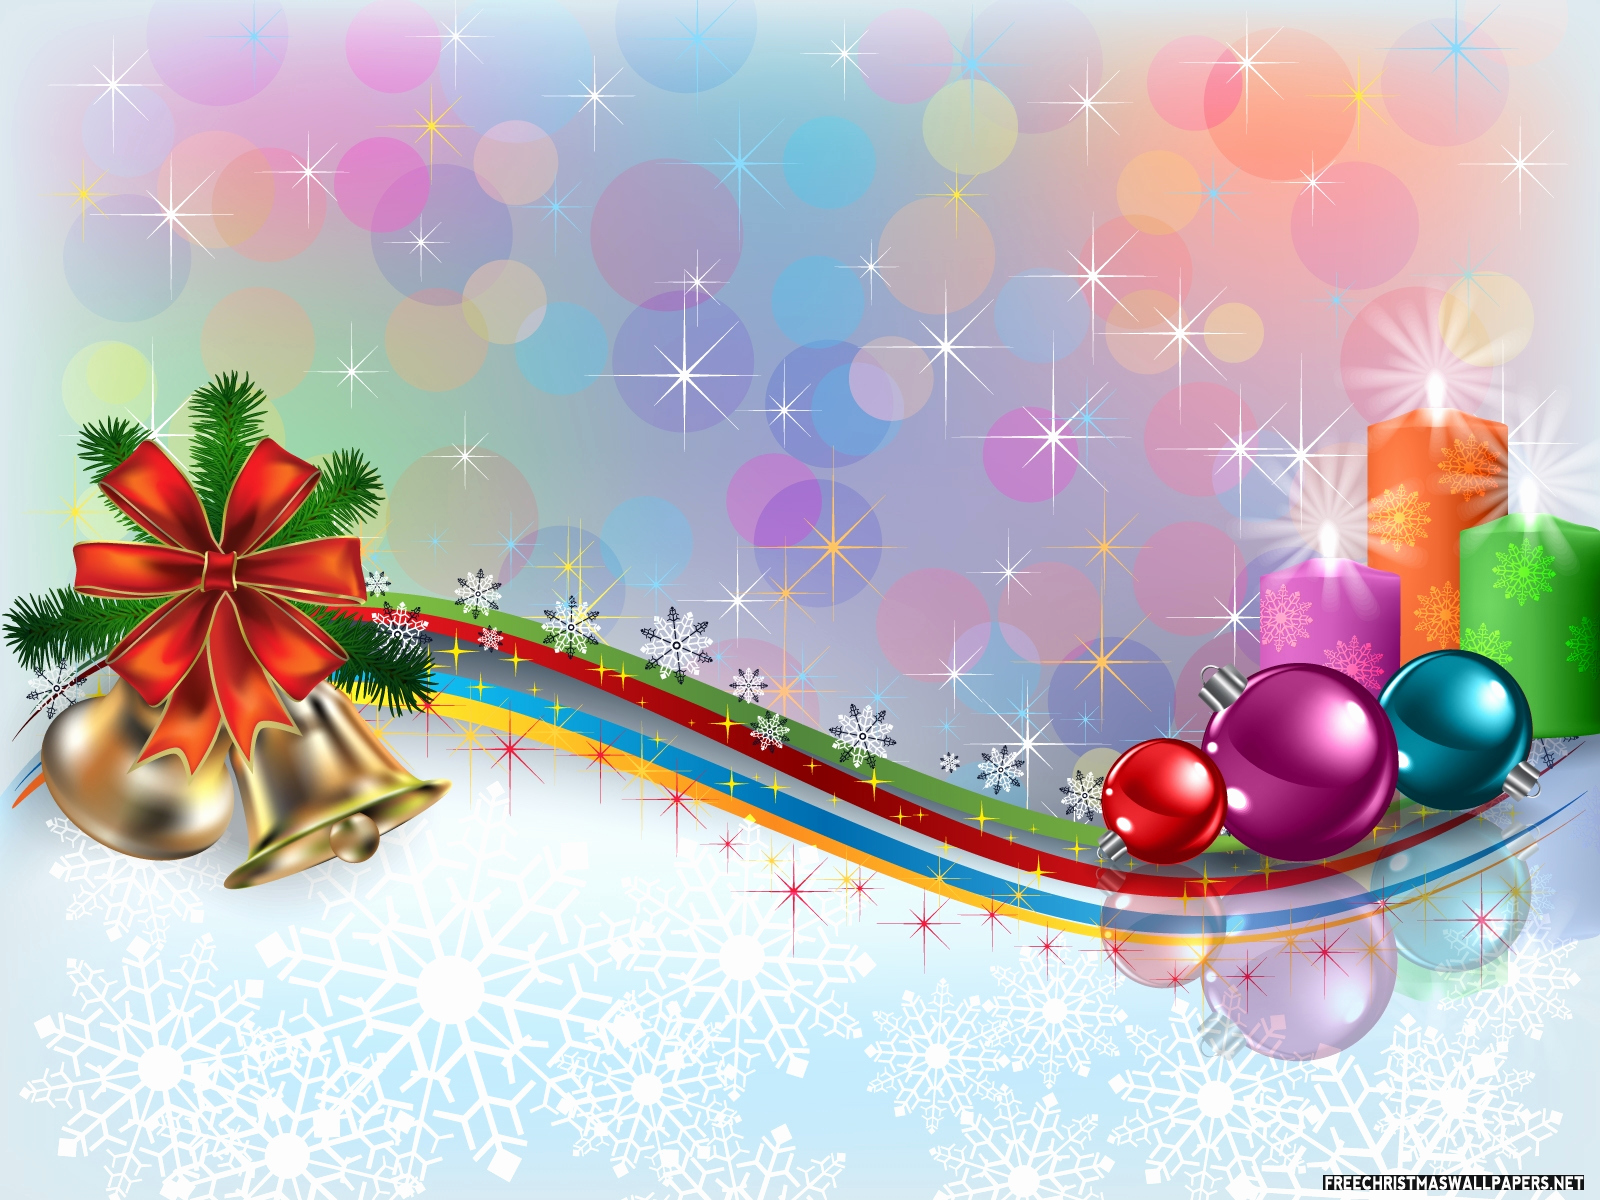 Free Christmas Desktop Wallpaper Luxury 45 New Free Collection Of Hd Christmas Wallpapers